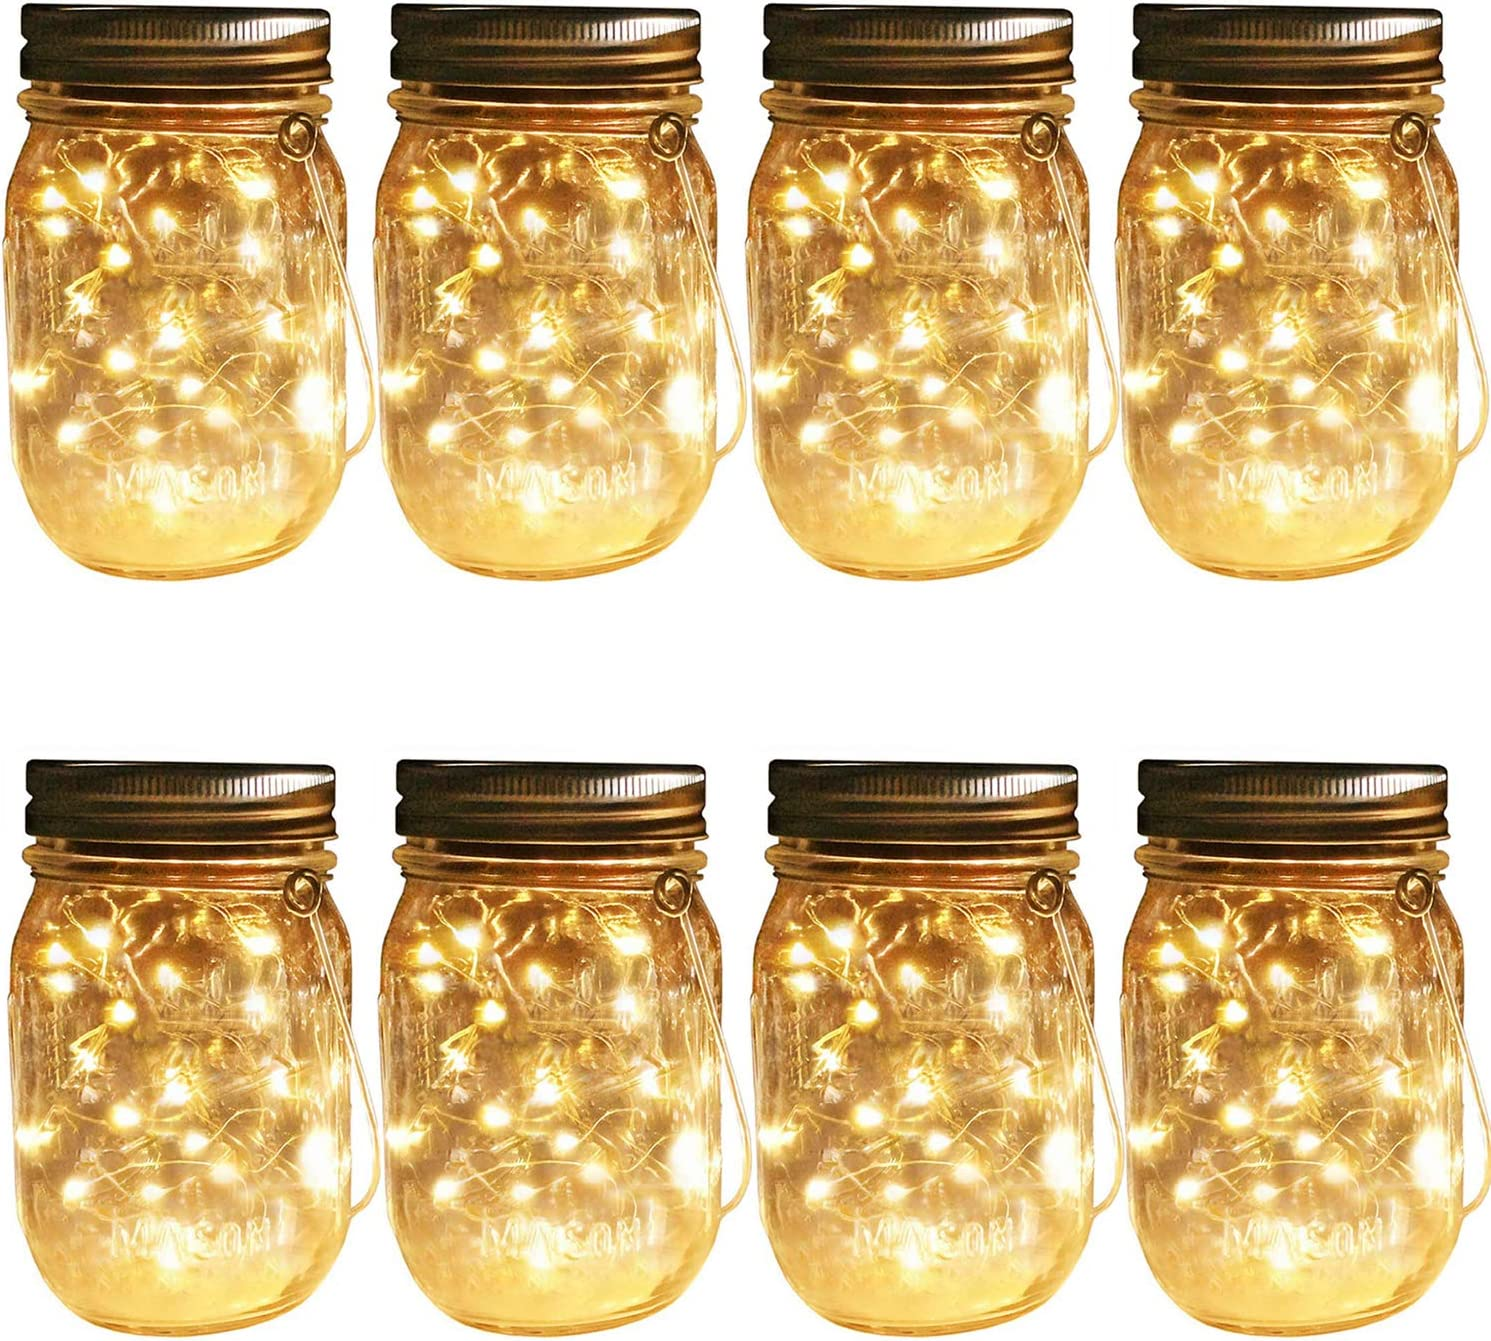 Solar Mason Jar Hanging Lights, 8 Pack 30 LEDs(Jar & Hangers Included) String Fairy Lights Glass Solar Laterns Table Lights,Great Outdoor Lamp Décor for Patio Garden Yard Deck Floor and Lawn